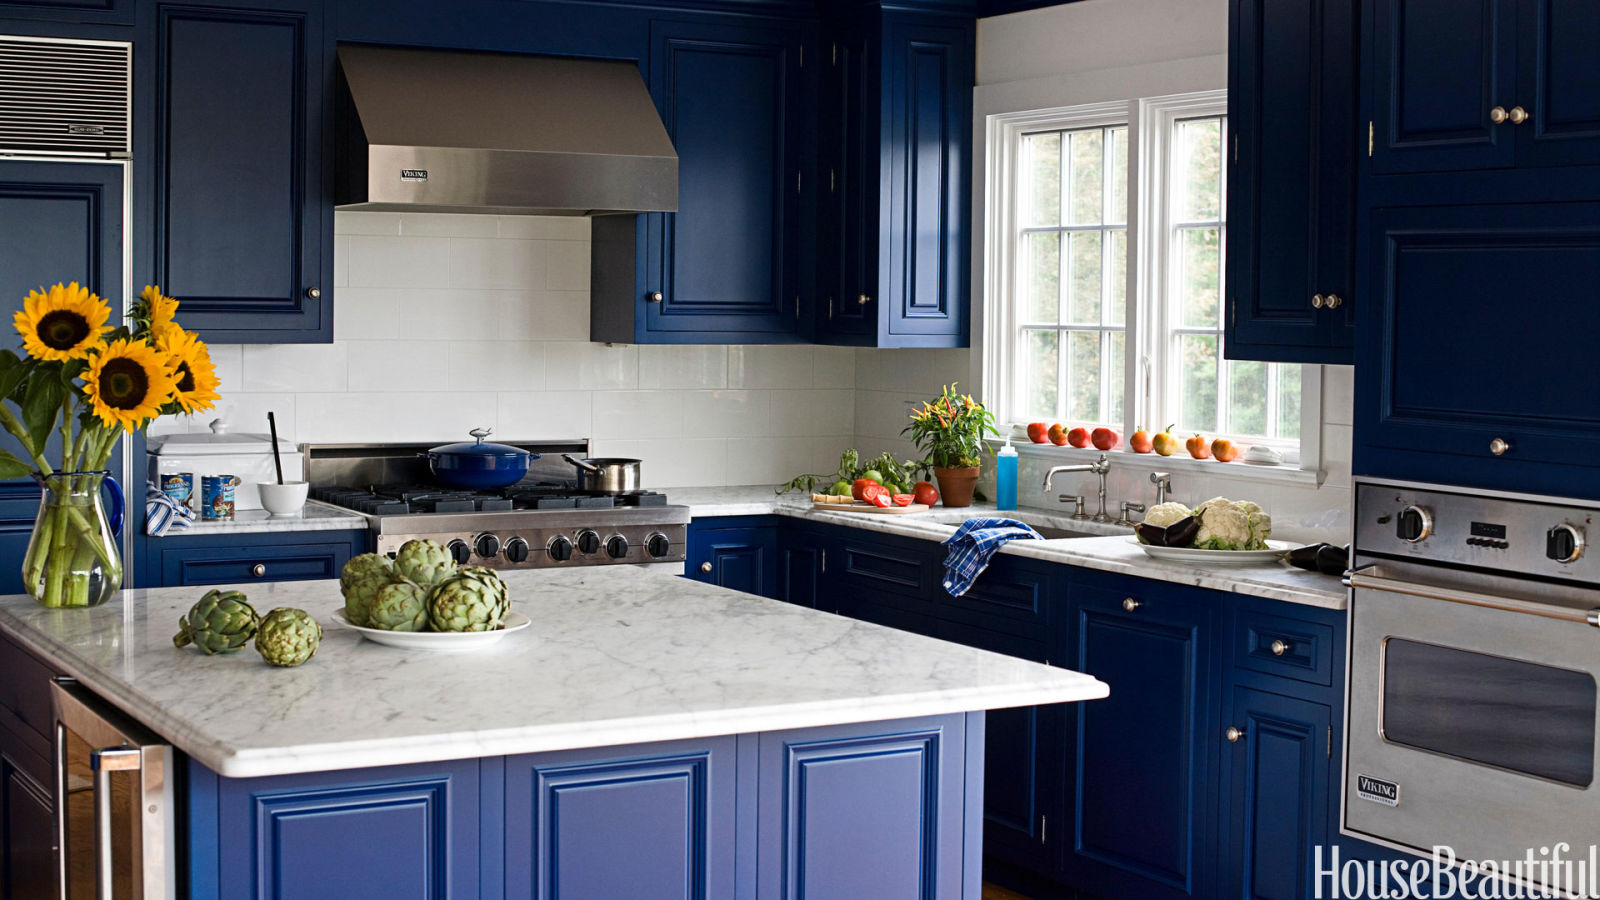 Kitchen Cabinet Paint Ideas 20+ best kitchen paint colors - ideas for popular kitchen colors